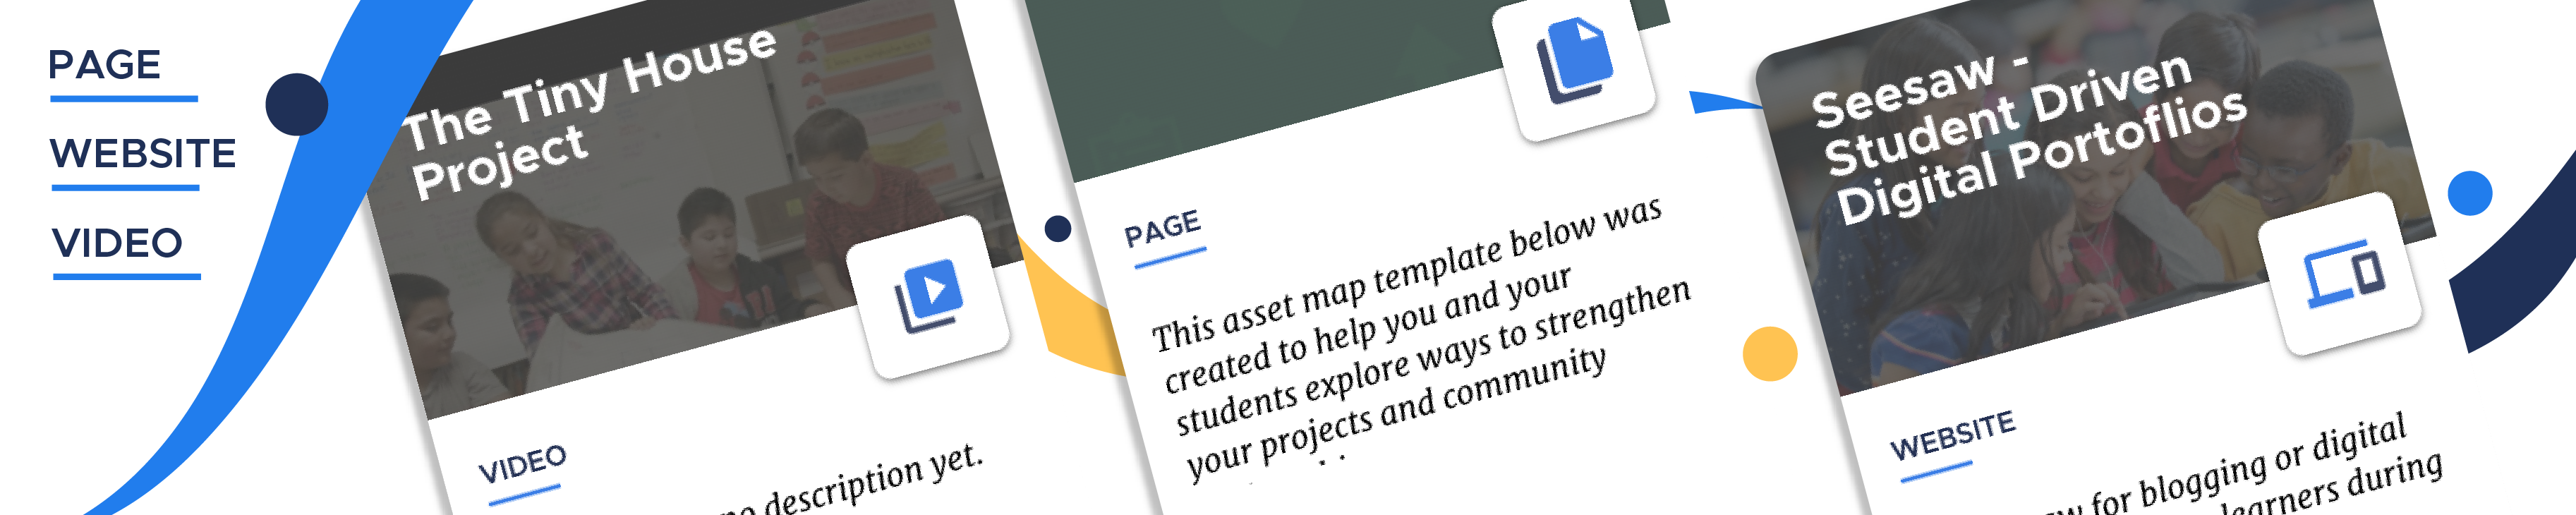 Examples of page, website, and video resource cards on the Participate platform.